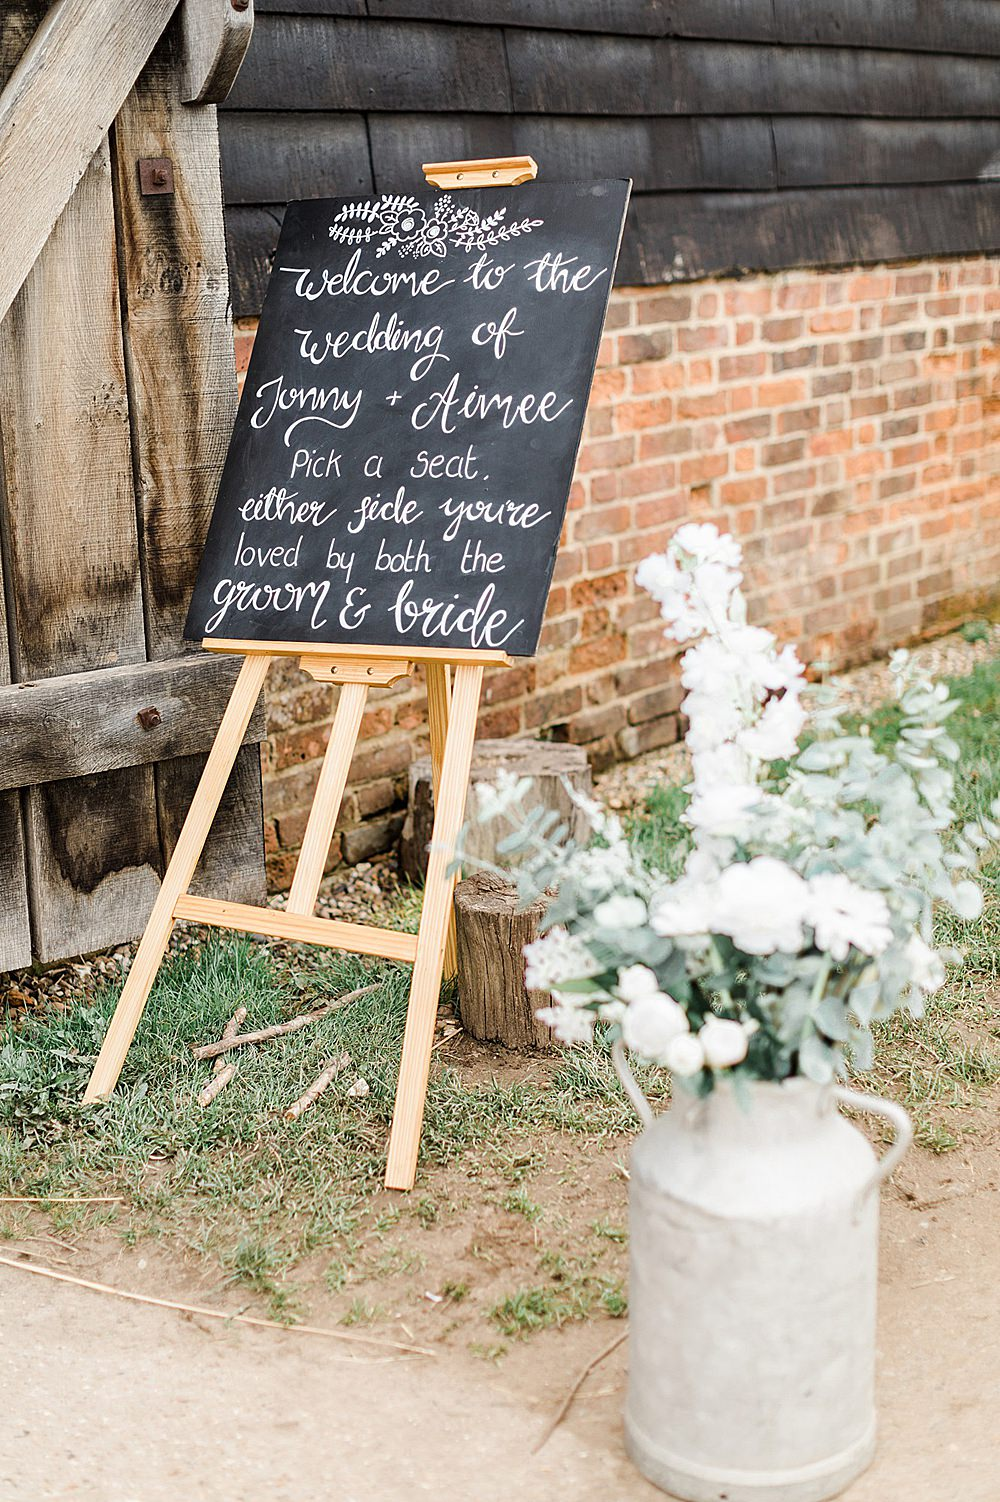 Chalk Black Board Sign Easel Welcome Calligraphy Chiltern Open Air Museum Wedding Terri & Lori Fine Art Photography